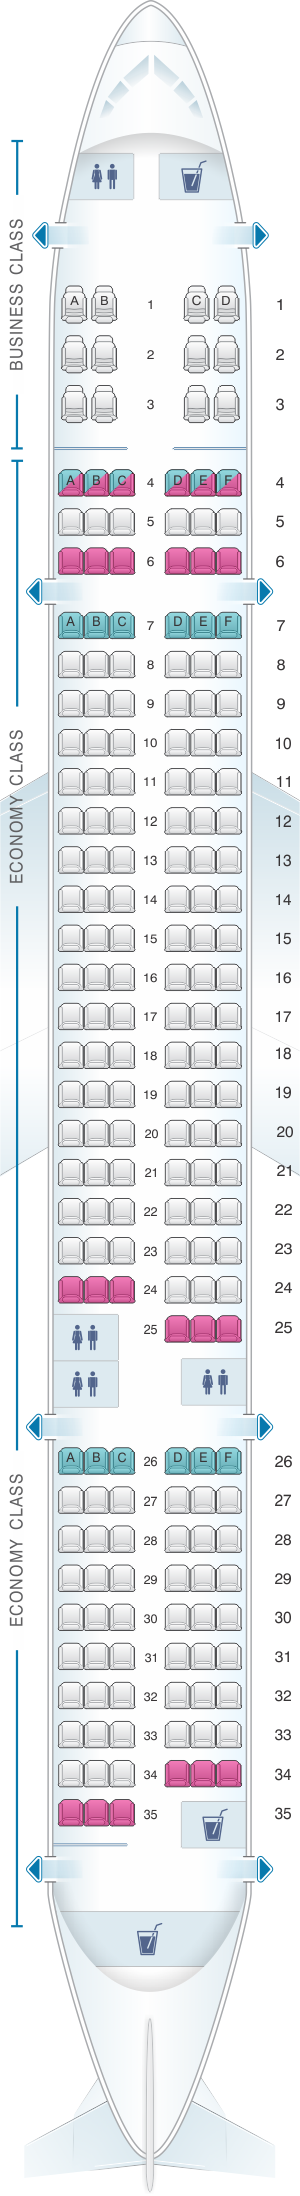 Seat map for Fly Jamaica Boeing B757-200